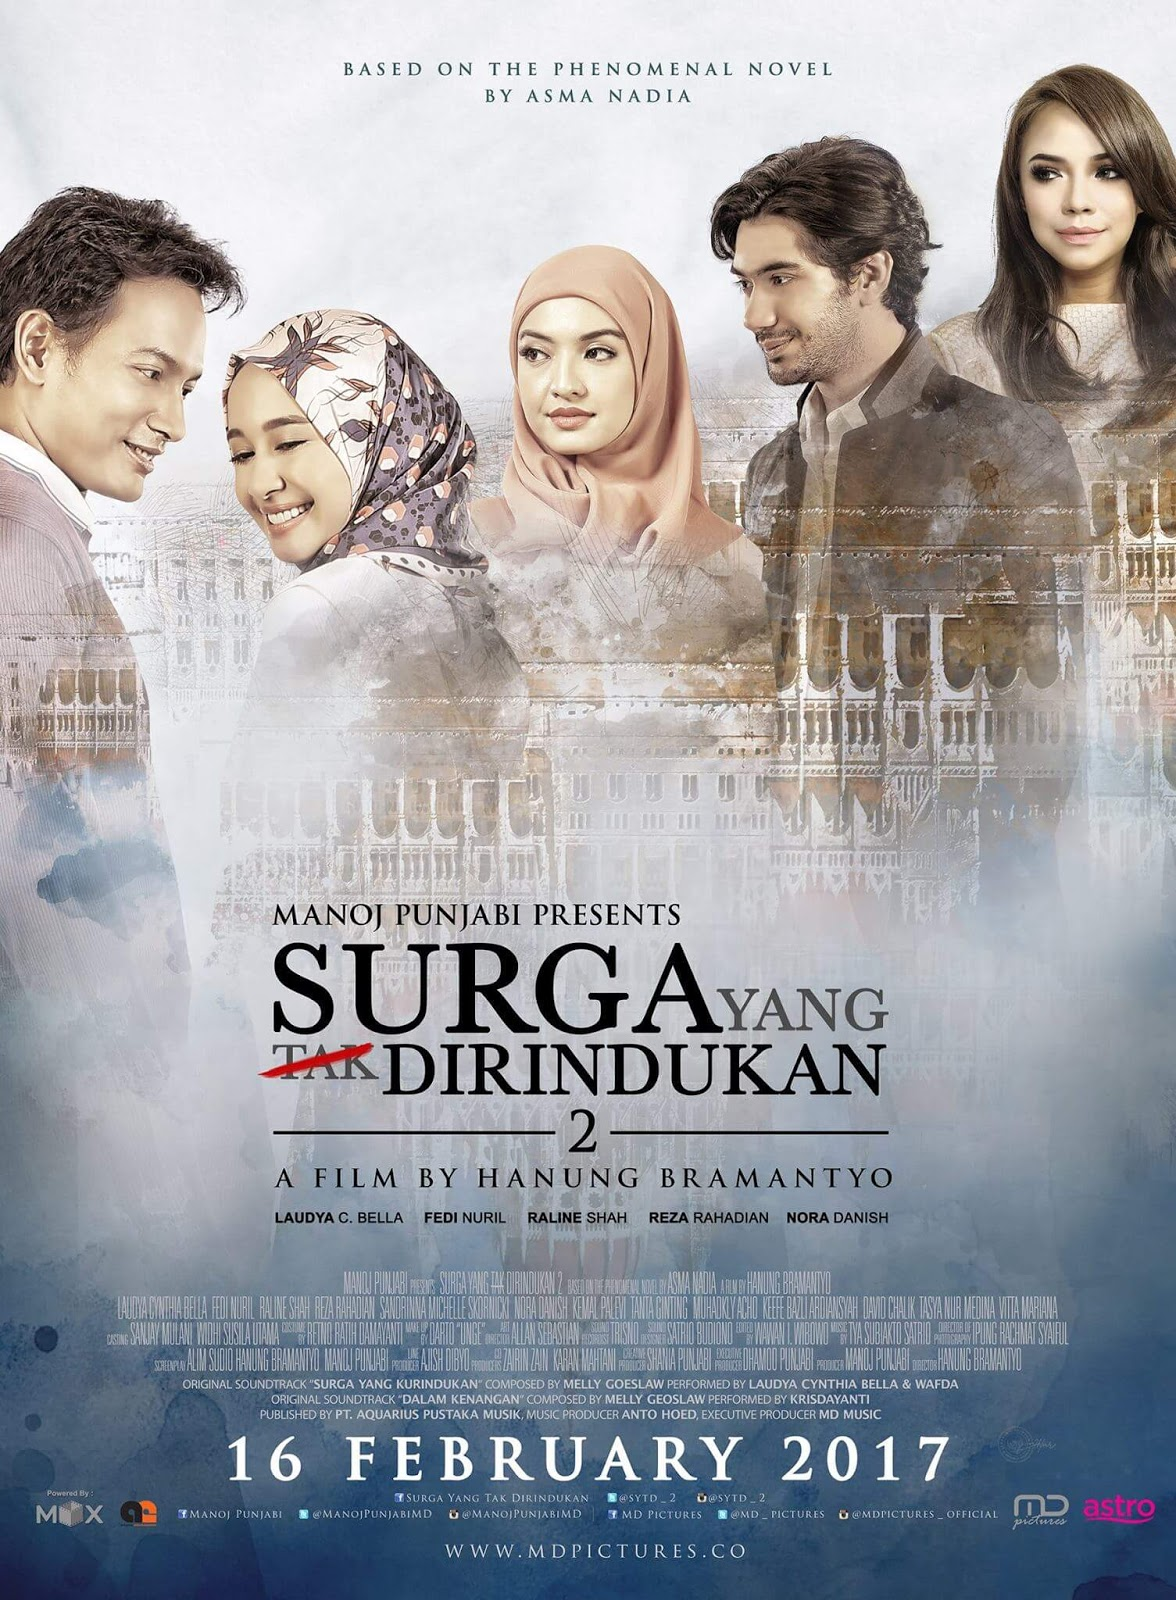 Download Film Surga Yang Tak Dirindukan 2 : download, surga, dirindukan, SURGA, DIRINDUKAN, MOVIES